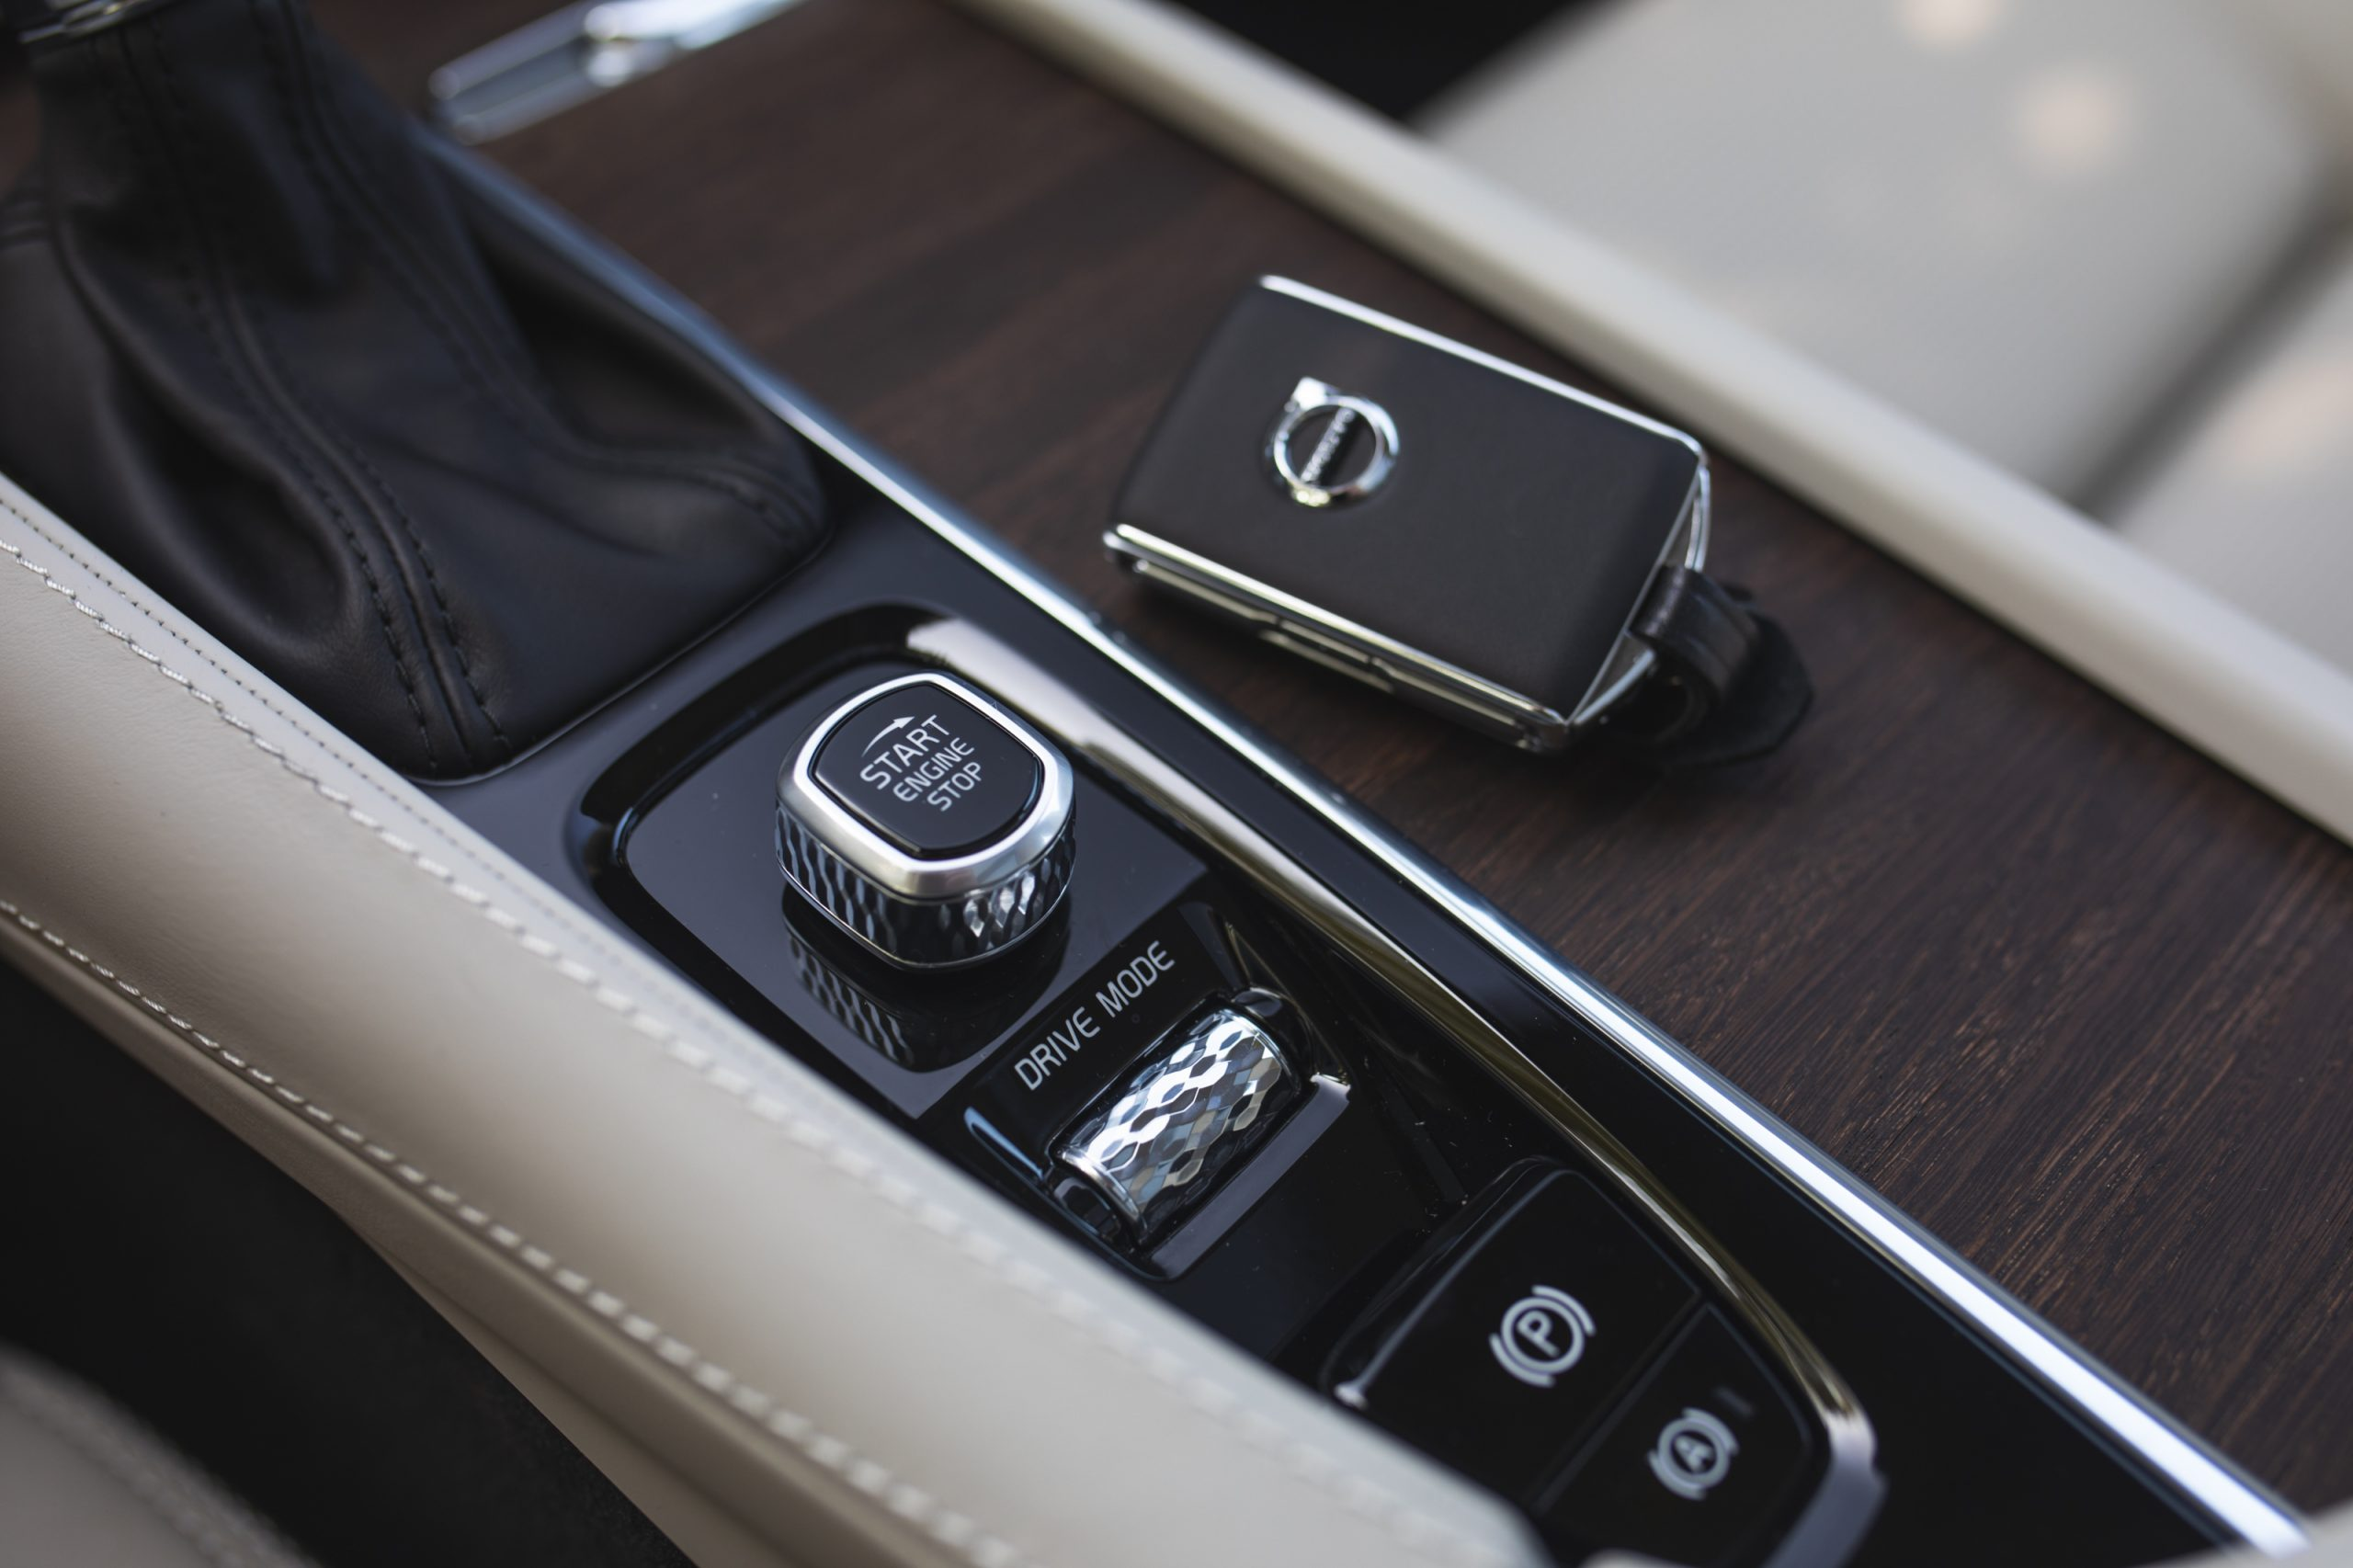 Volvo V90 key and ignition close up